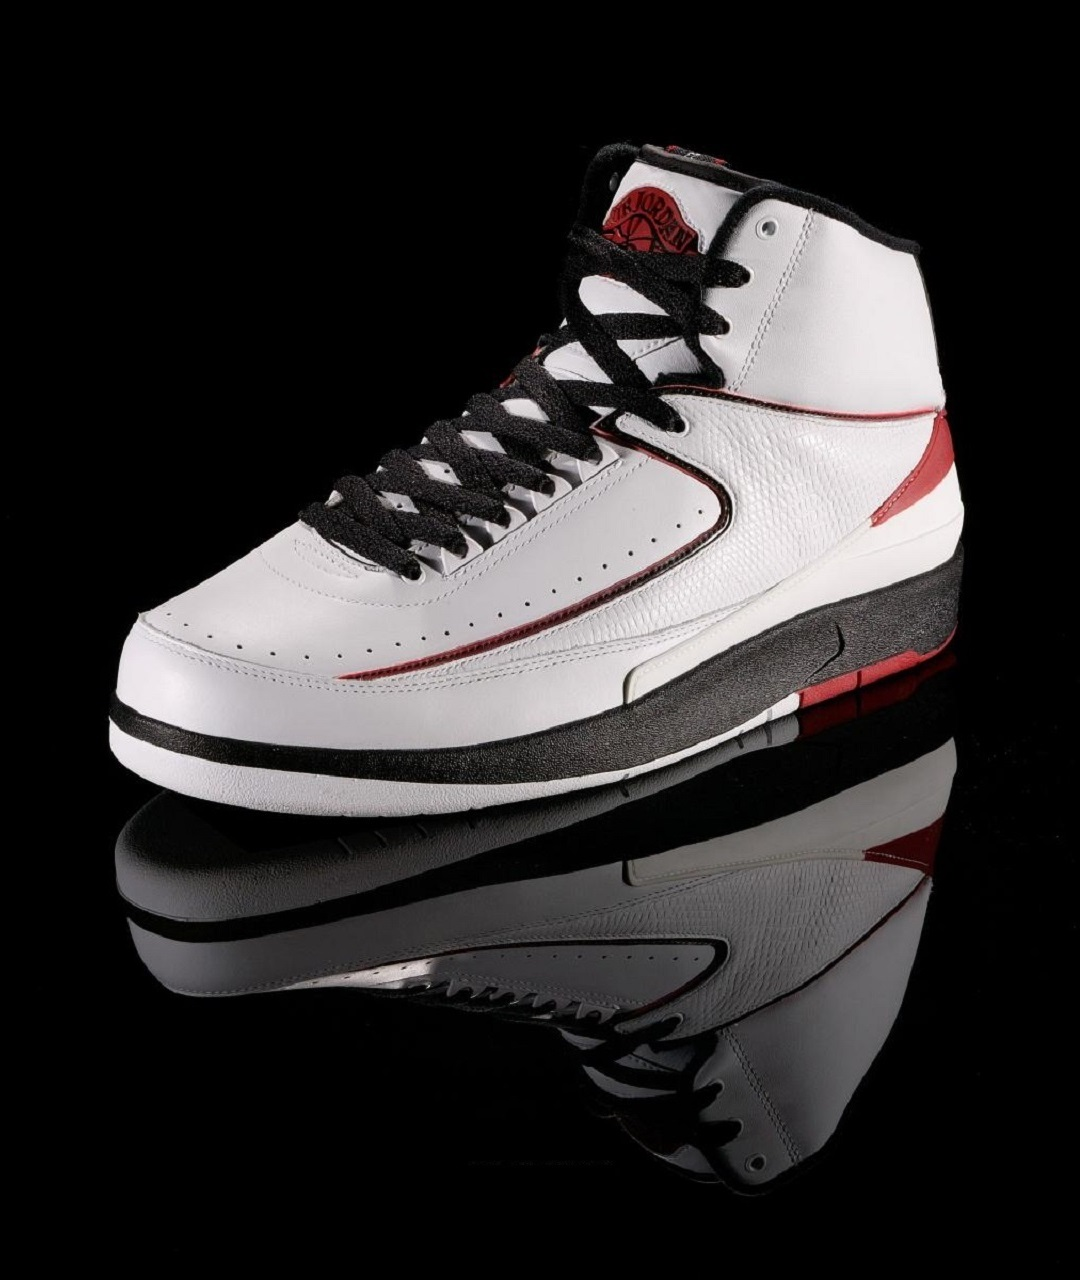 322668a3bd3 The popularity of the shoe's namesake, Michael Jordan, already had begun  outgrowing his home country, and Nike went to Italy to produce the Air  Jordan II.